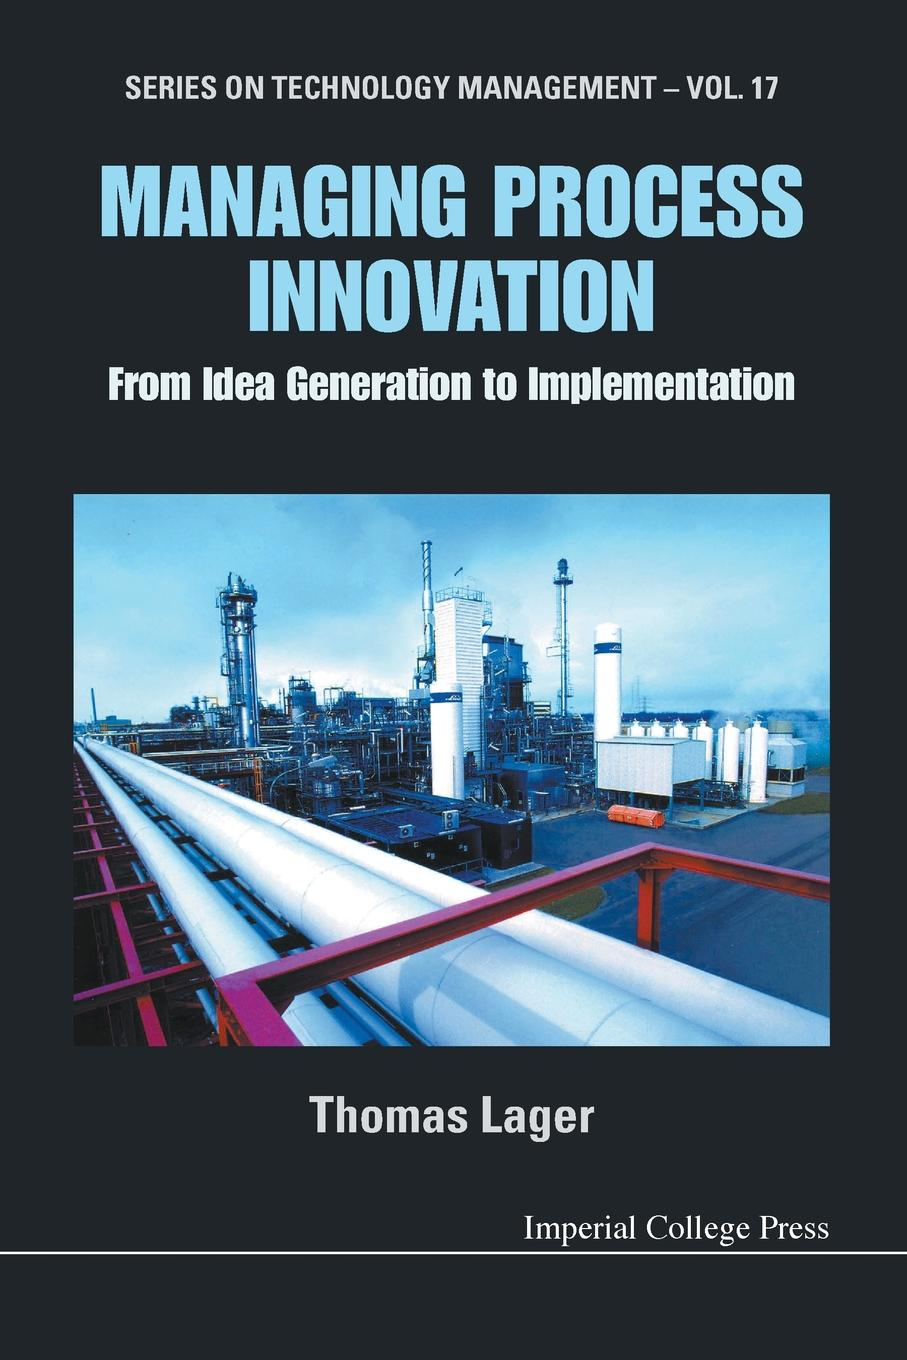 Thomas Lager MANAGING PROCESS INNOVATION. FROM IDEA GENERATION TO IMPLEMENTATION